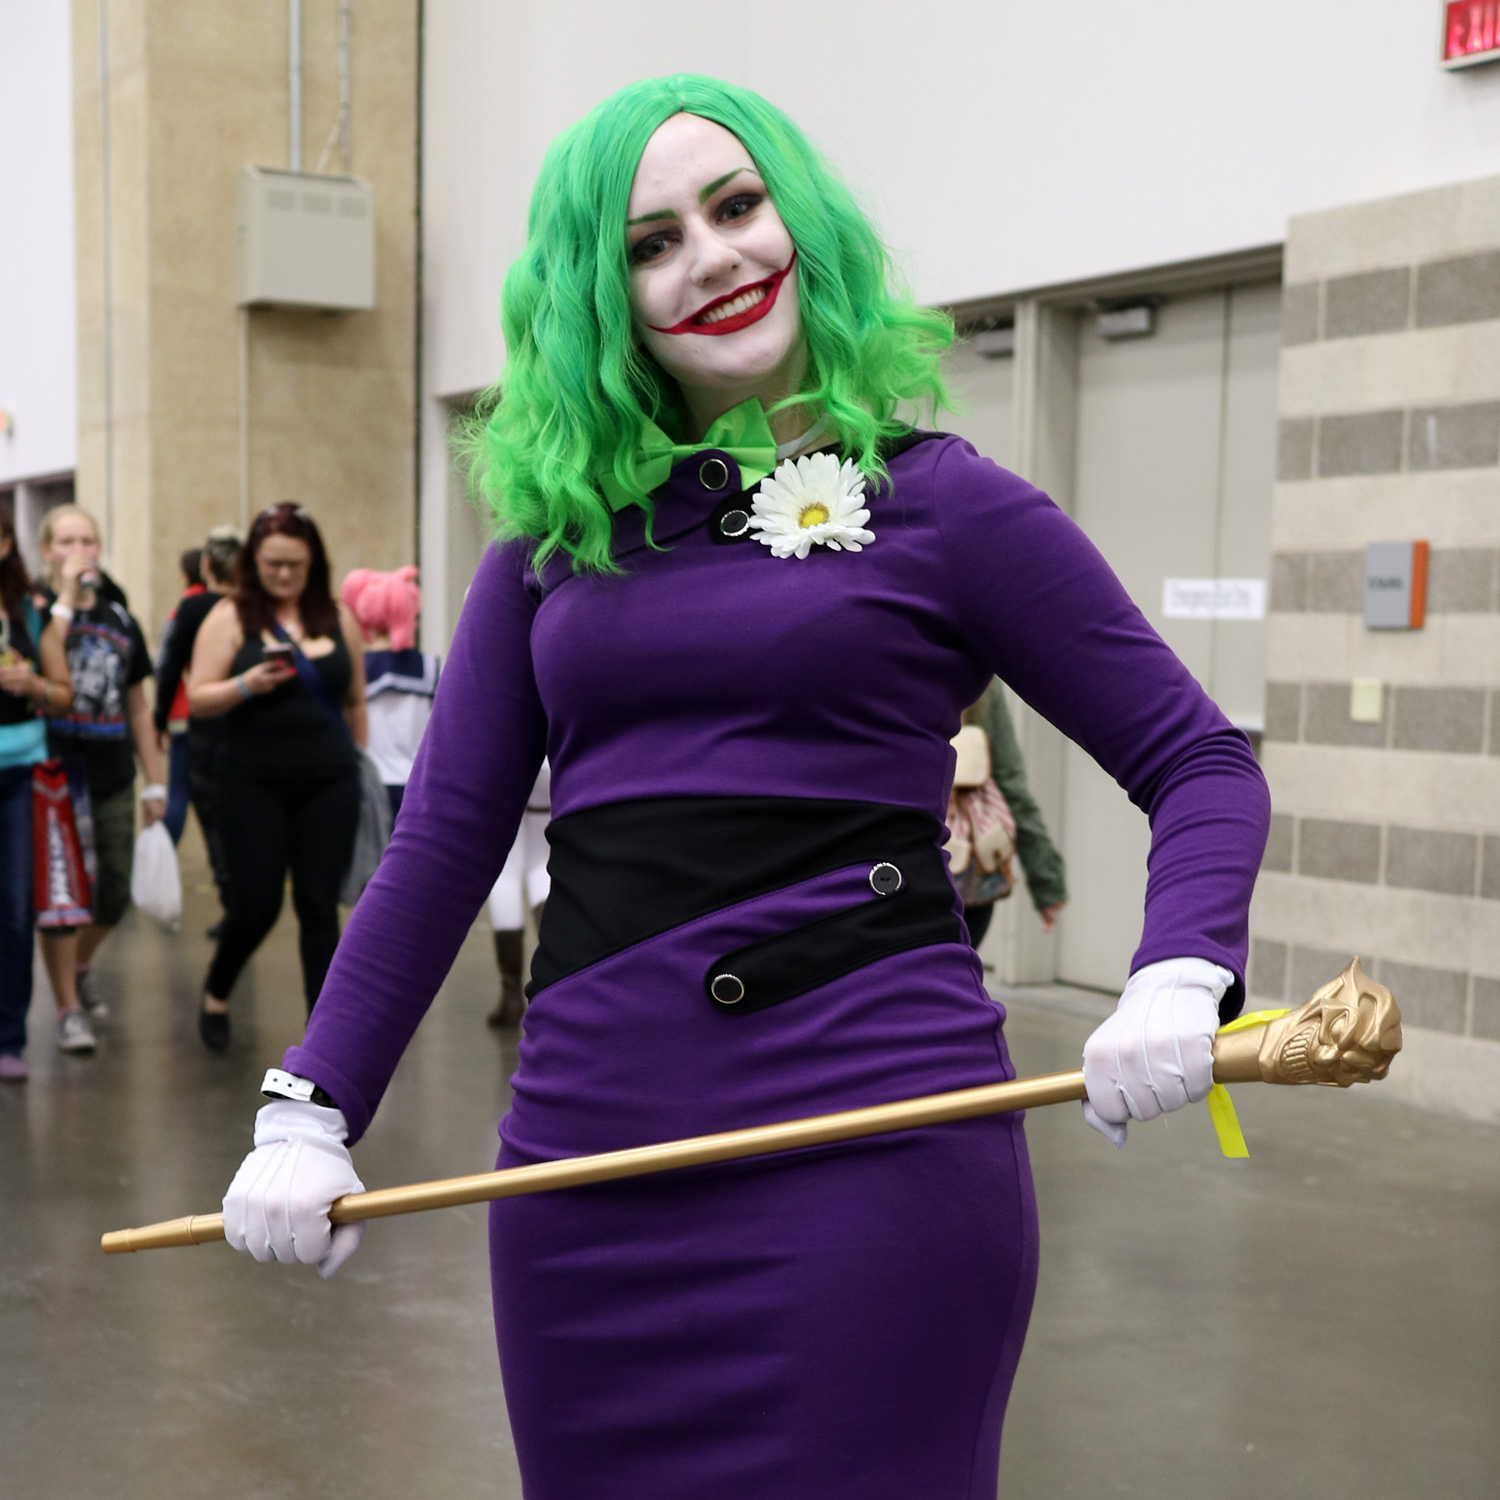 Dallas comic con speed dating